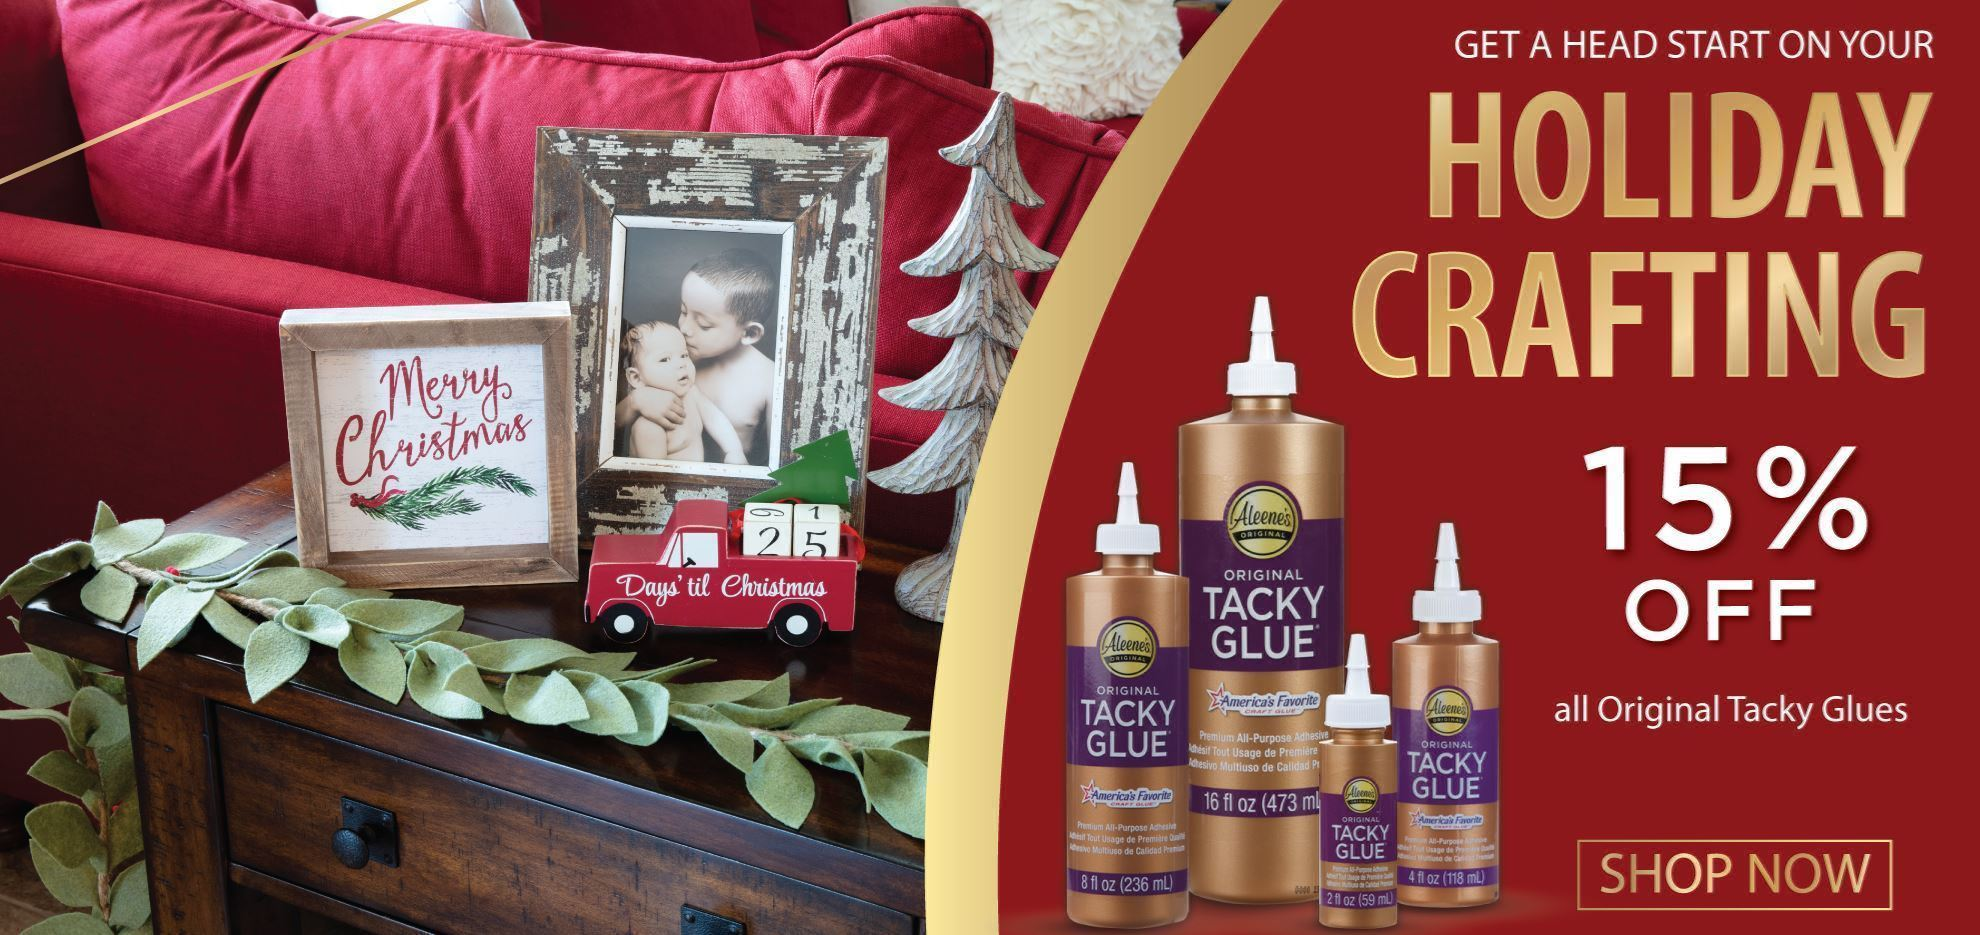 15% Off All Original Tacky Glues